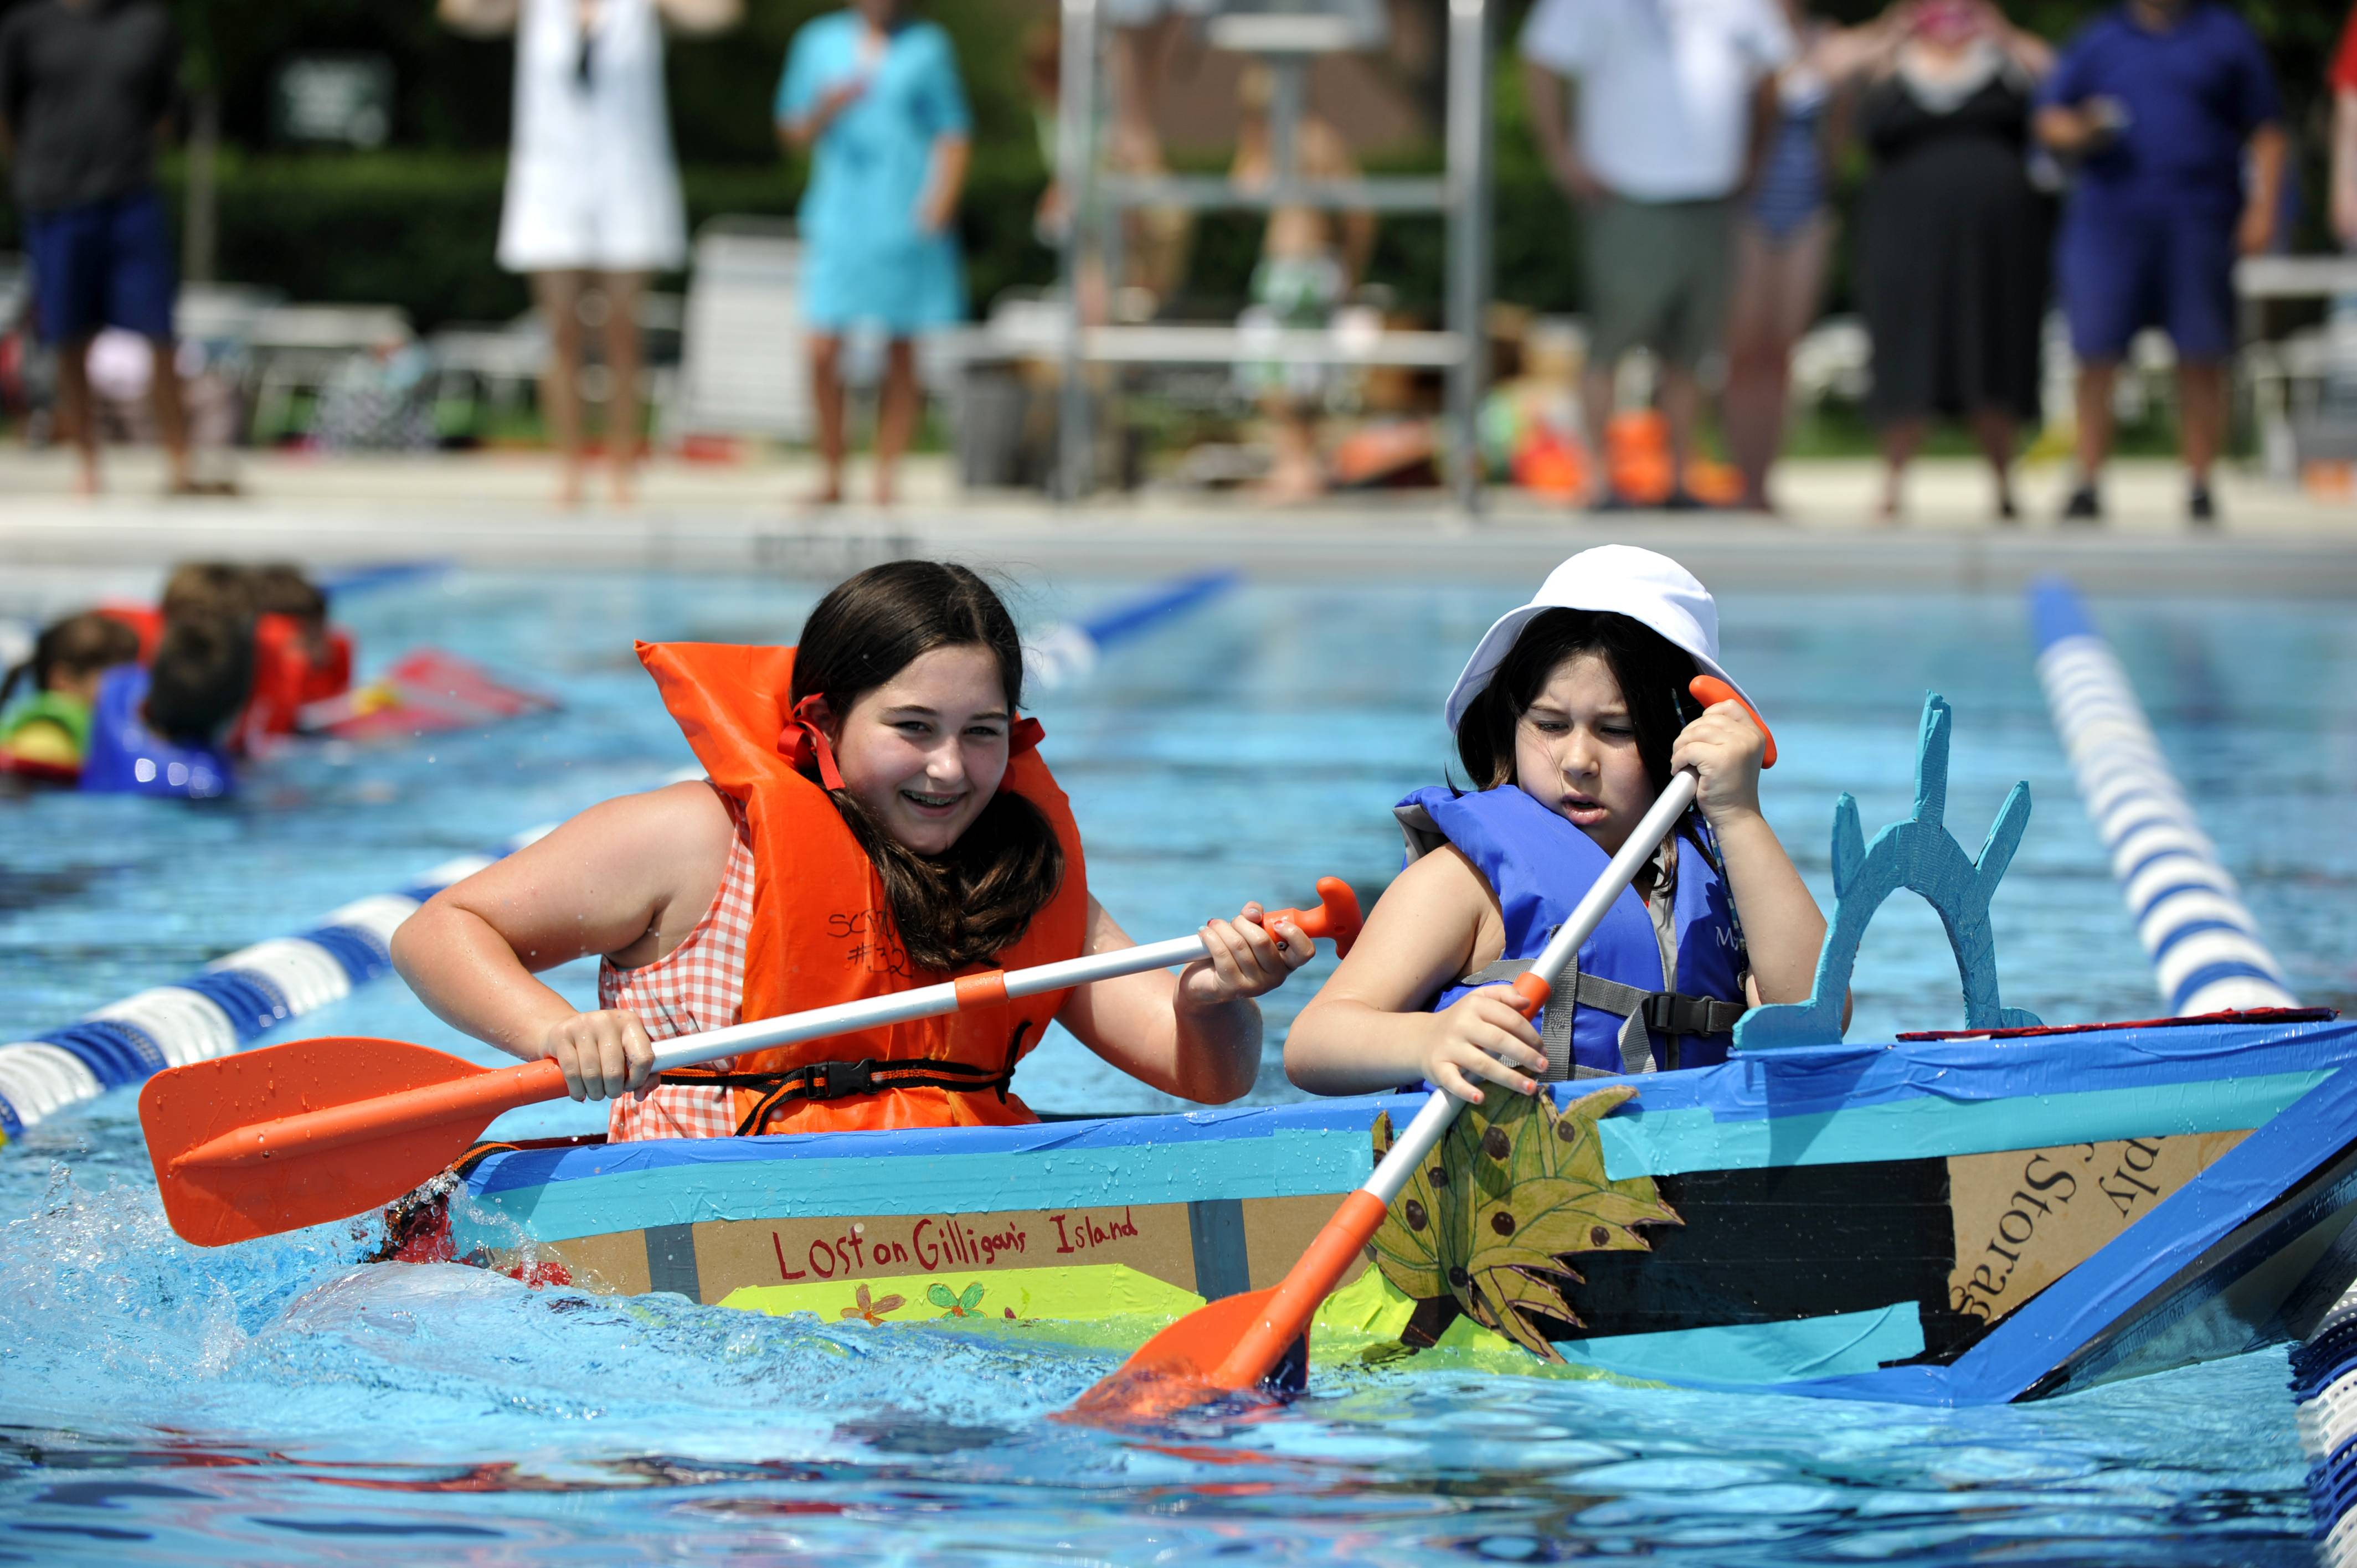 "Lily Rooney, of St. Charles, 12, left, and her sister Norah, 8, paddle their handmade boat called Gilligan's Island, during the Sink or Swim Cardboard Boat Race at Swanson Pool in St. Charles on Saturday. This was Lily and Norah's first time racing a cardboard boat and they came in first place. Their grandfather, Jim Stevens, helped them construct it and Norah said she thought it was ""fun to be in character."""